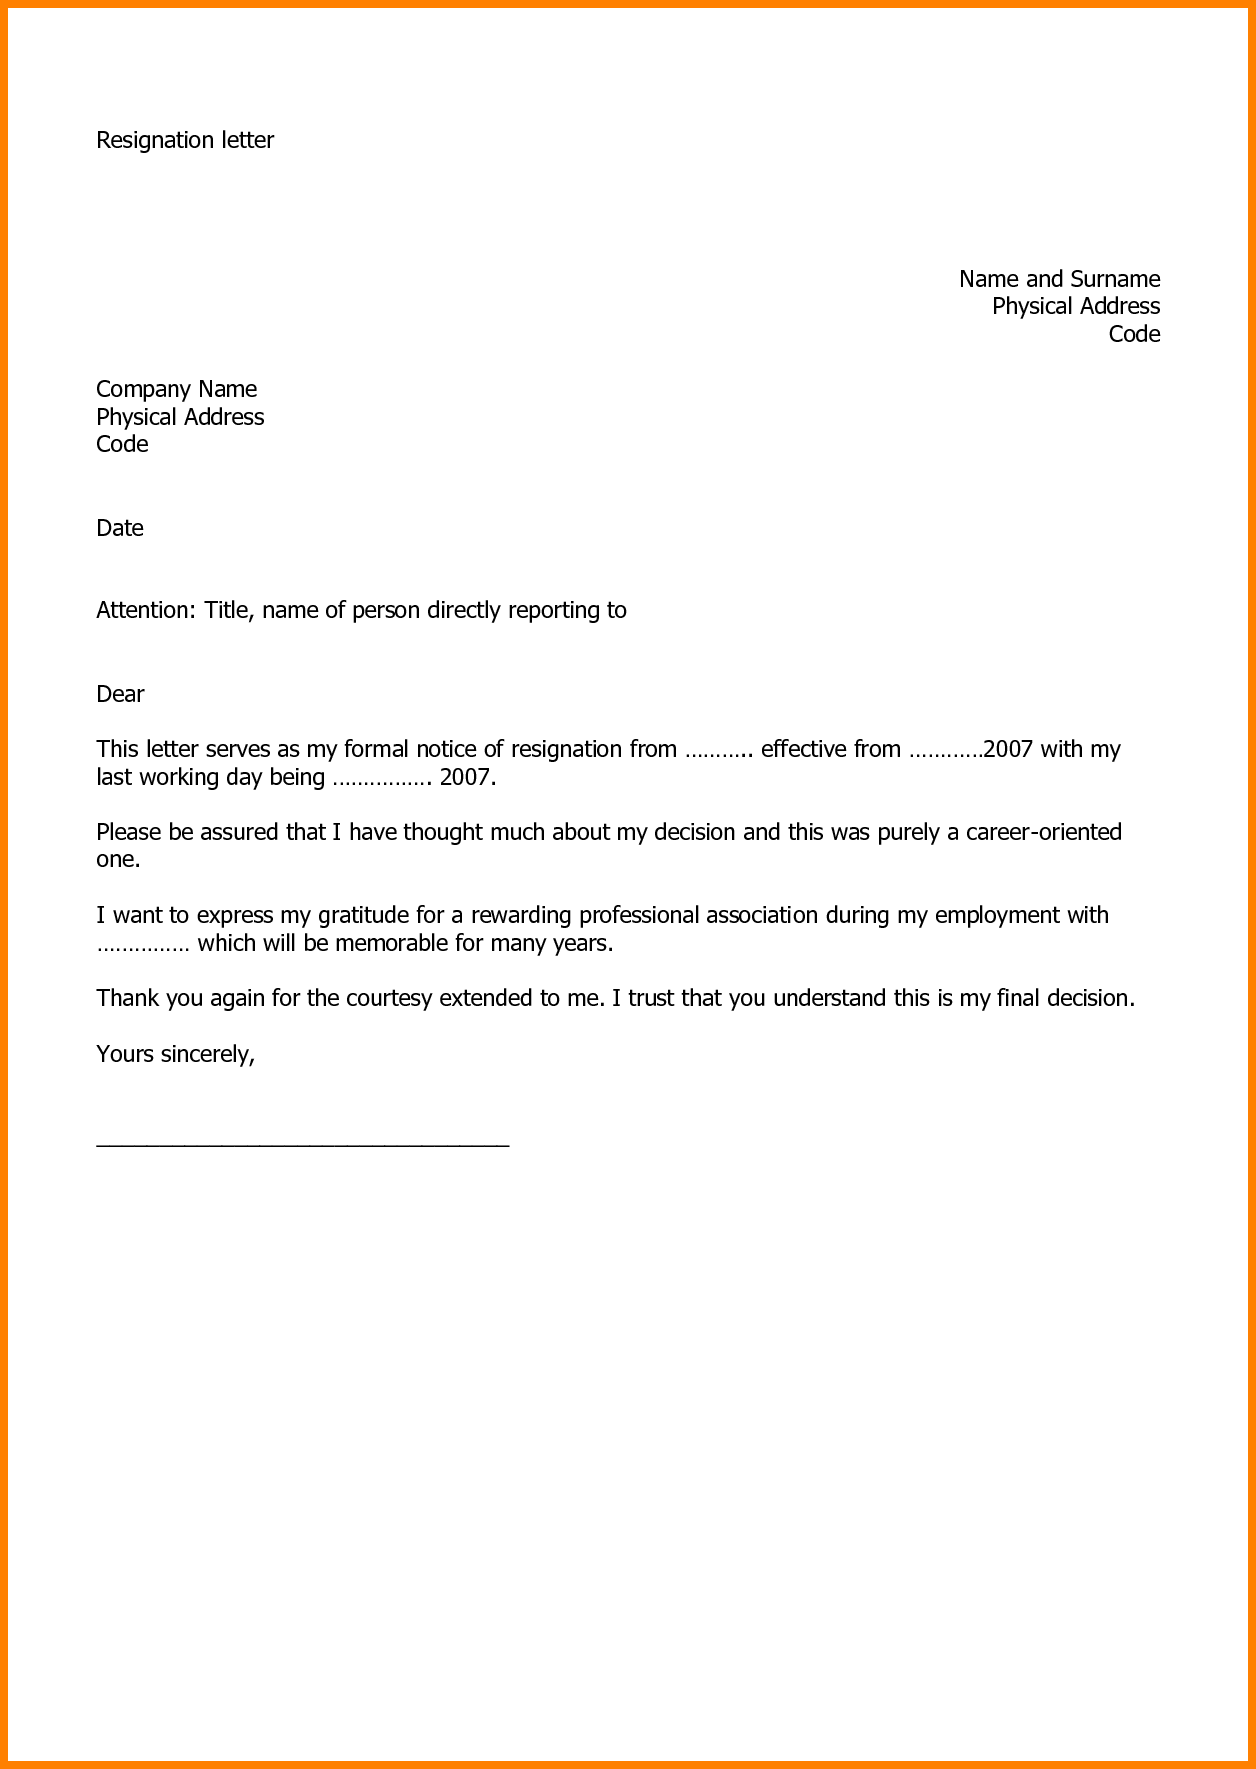 formal resignation letter sample resignation letter format resignation template job letter letter